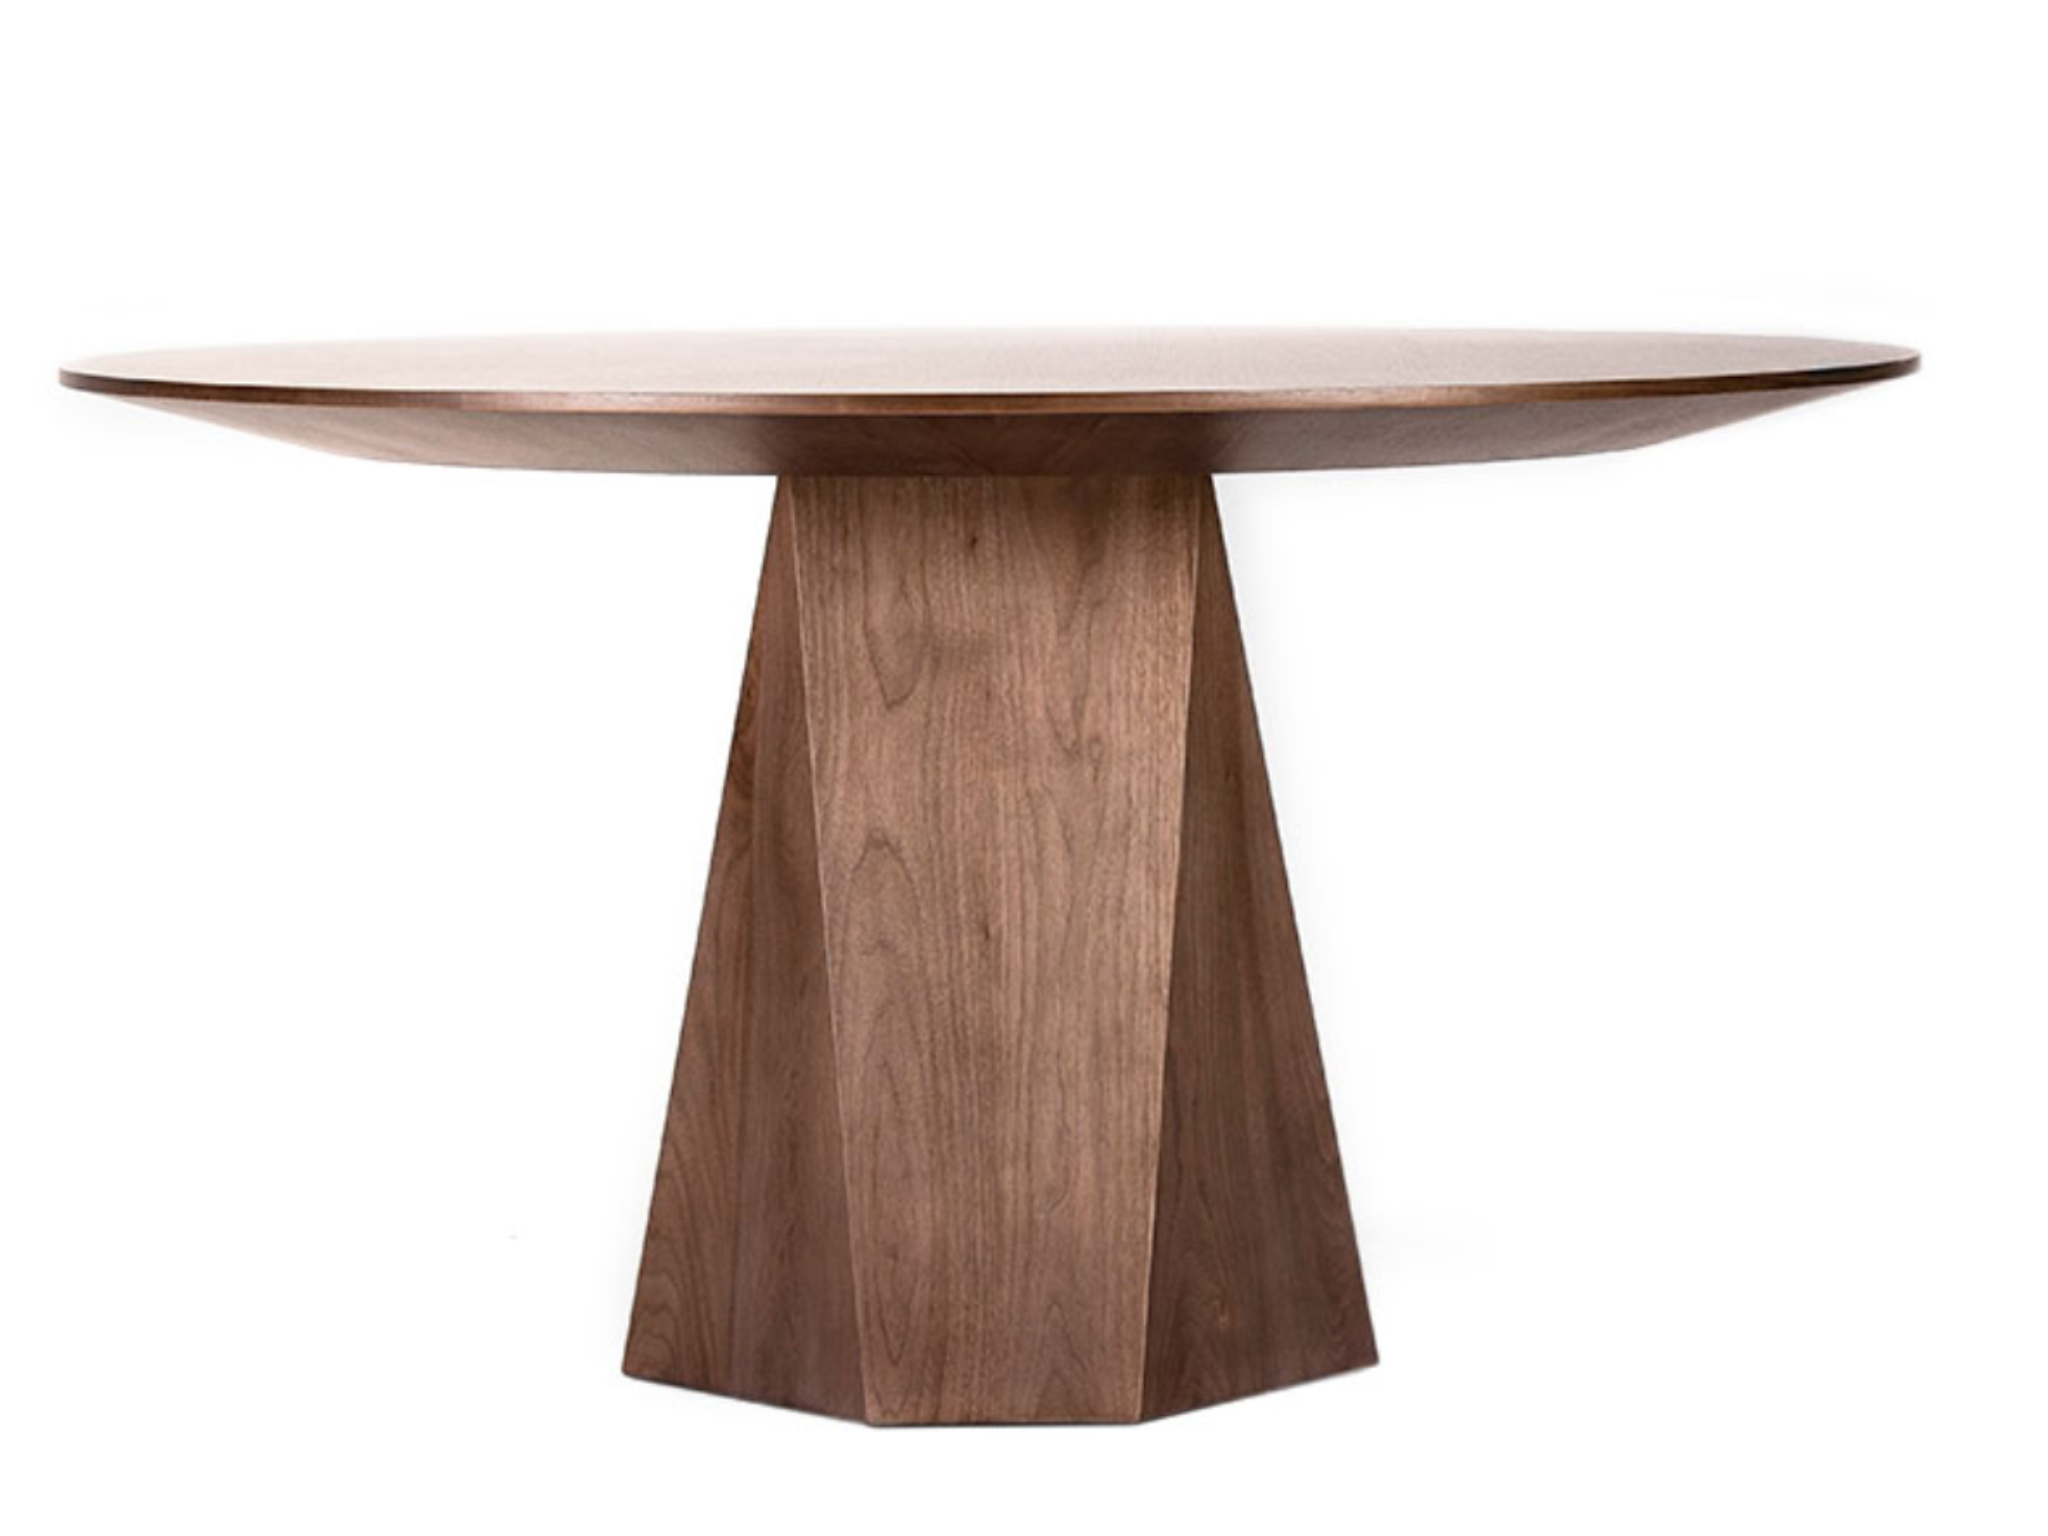 Malaga Dining Table Round Dining Table Modern Midcentury Modern